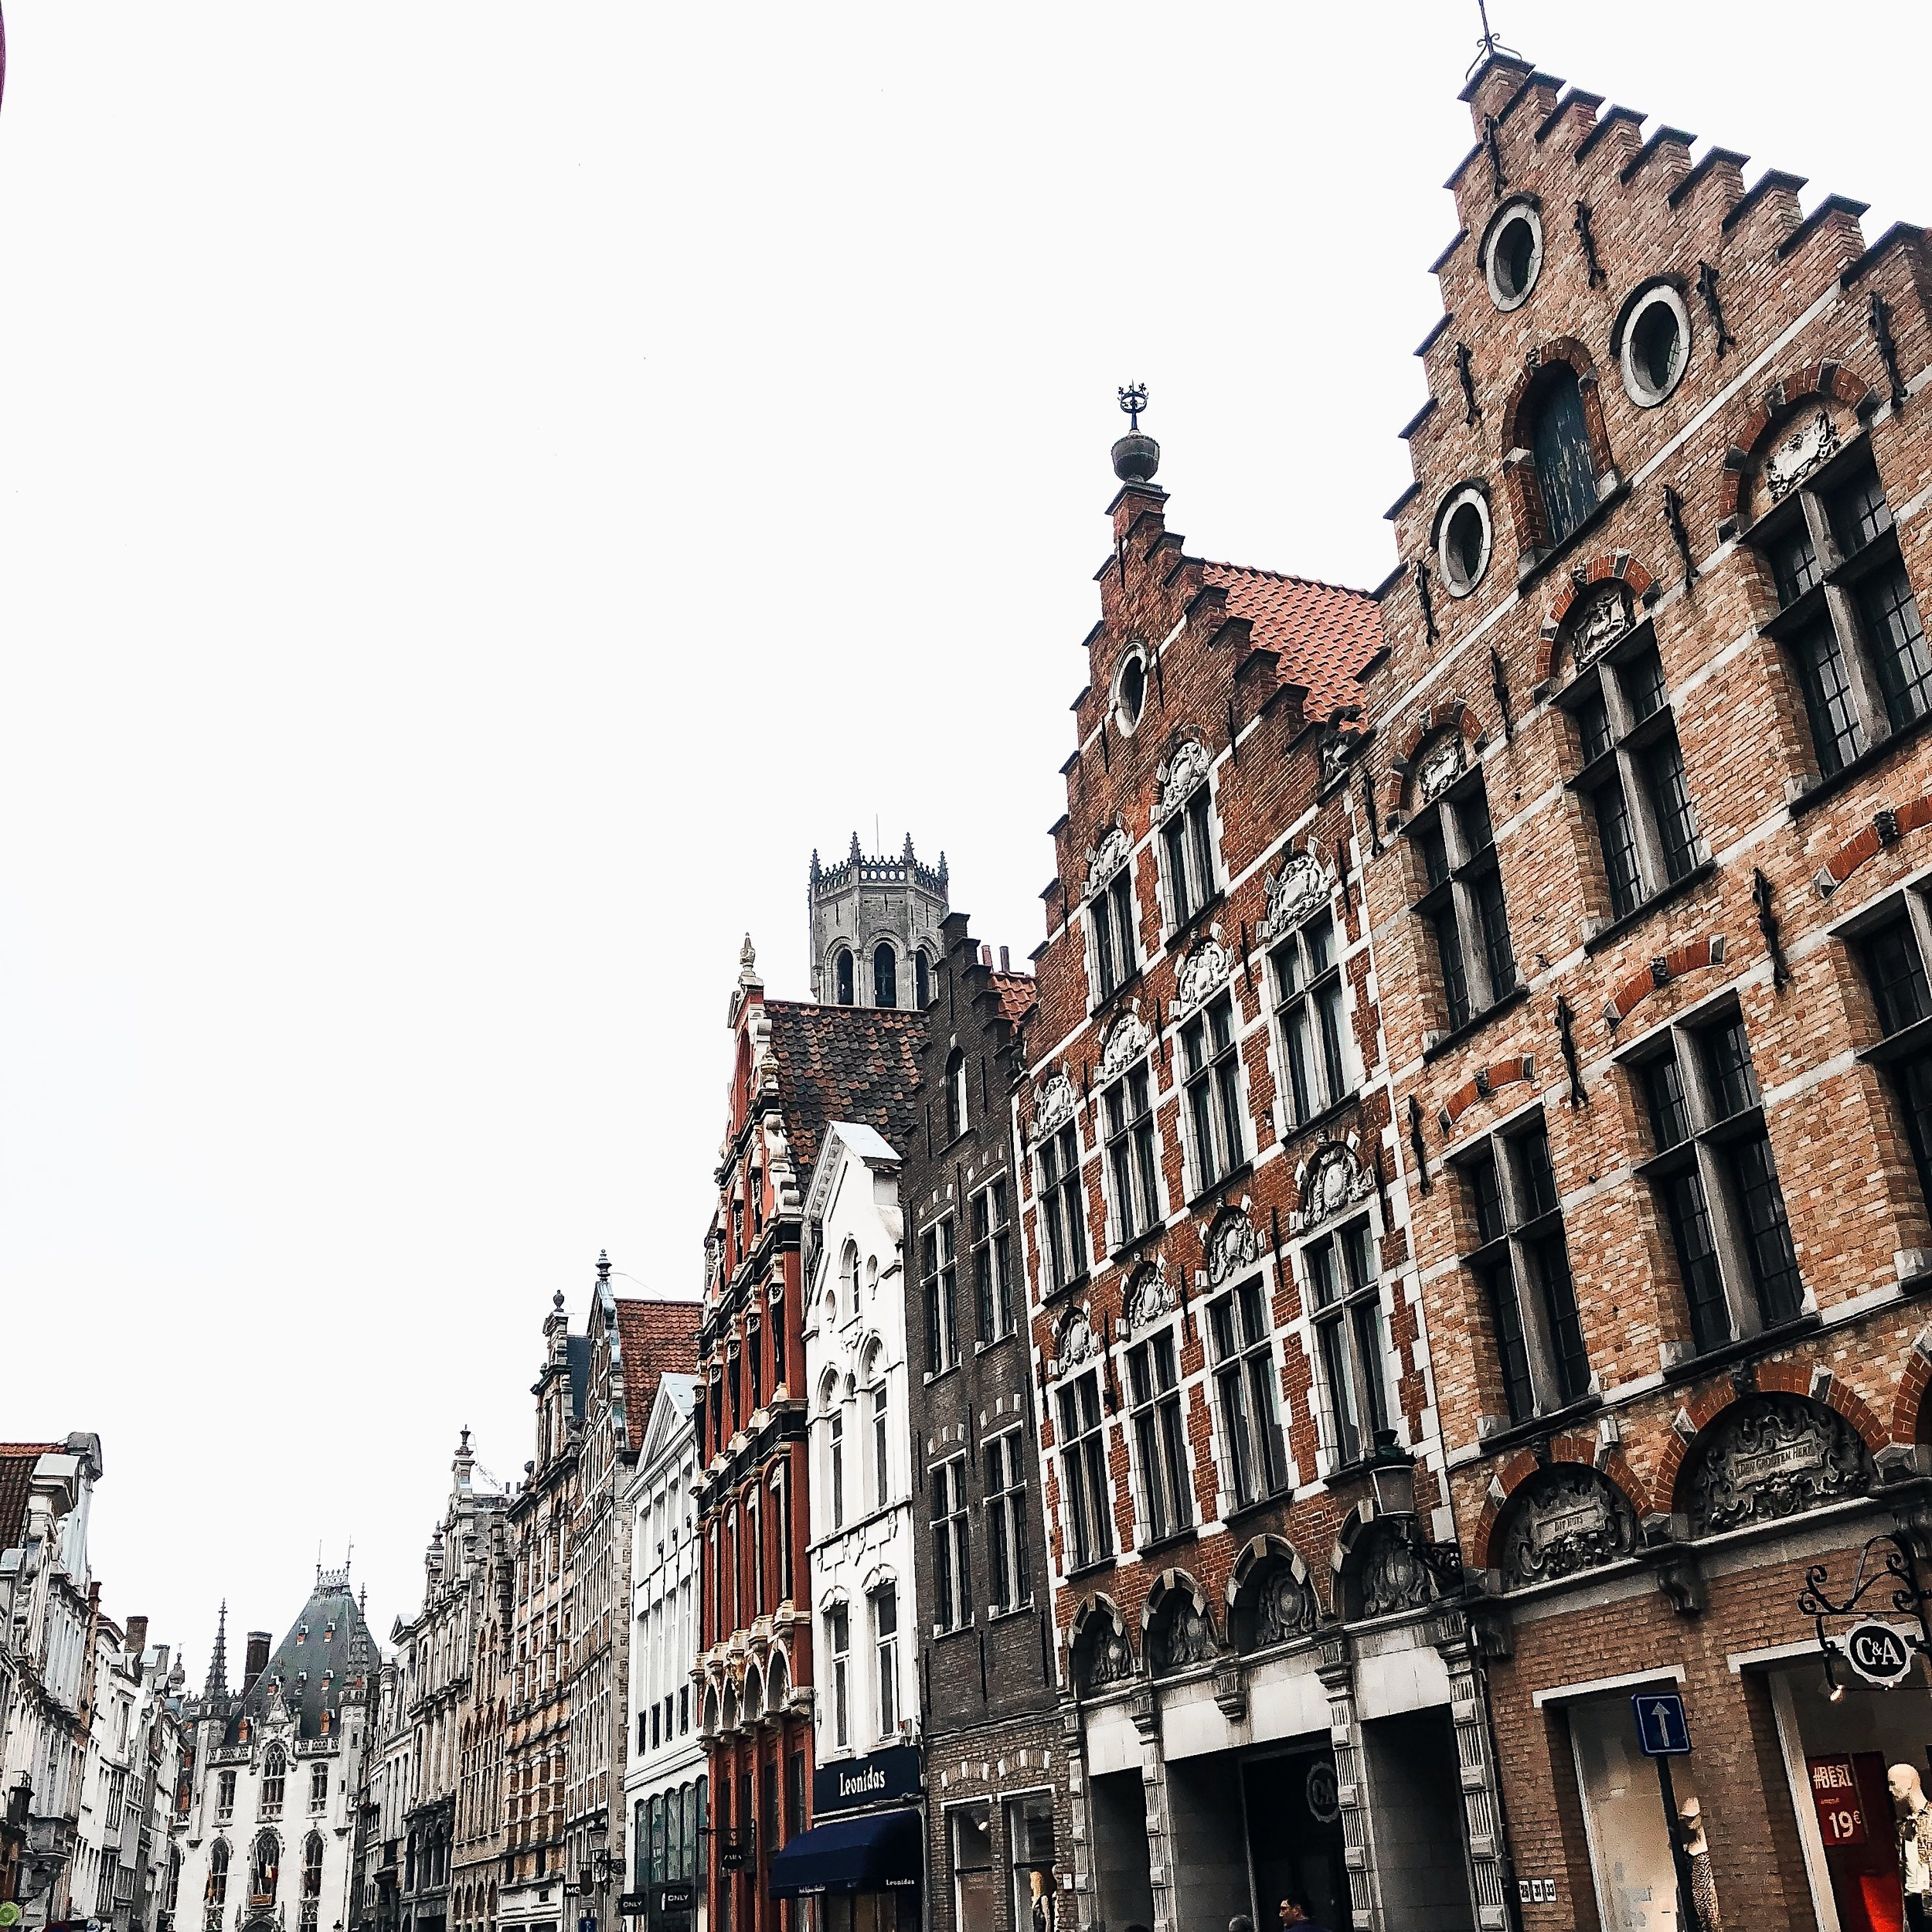 Belgium Travel Guide Bruges Ghent In 4 Days Esther Santer Fashion Blog NYC Street Style Blogger Outfit Sight Seeing Tourist Shop What How To Wear Expore What To Do Vacatiom Itinerary Short Stopover Layover Europe EuroTrip Summer Activities Suggestions.jpg